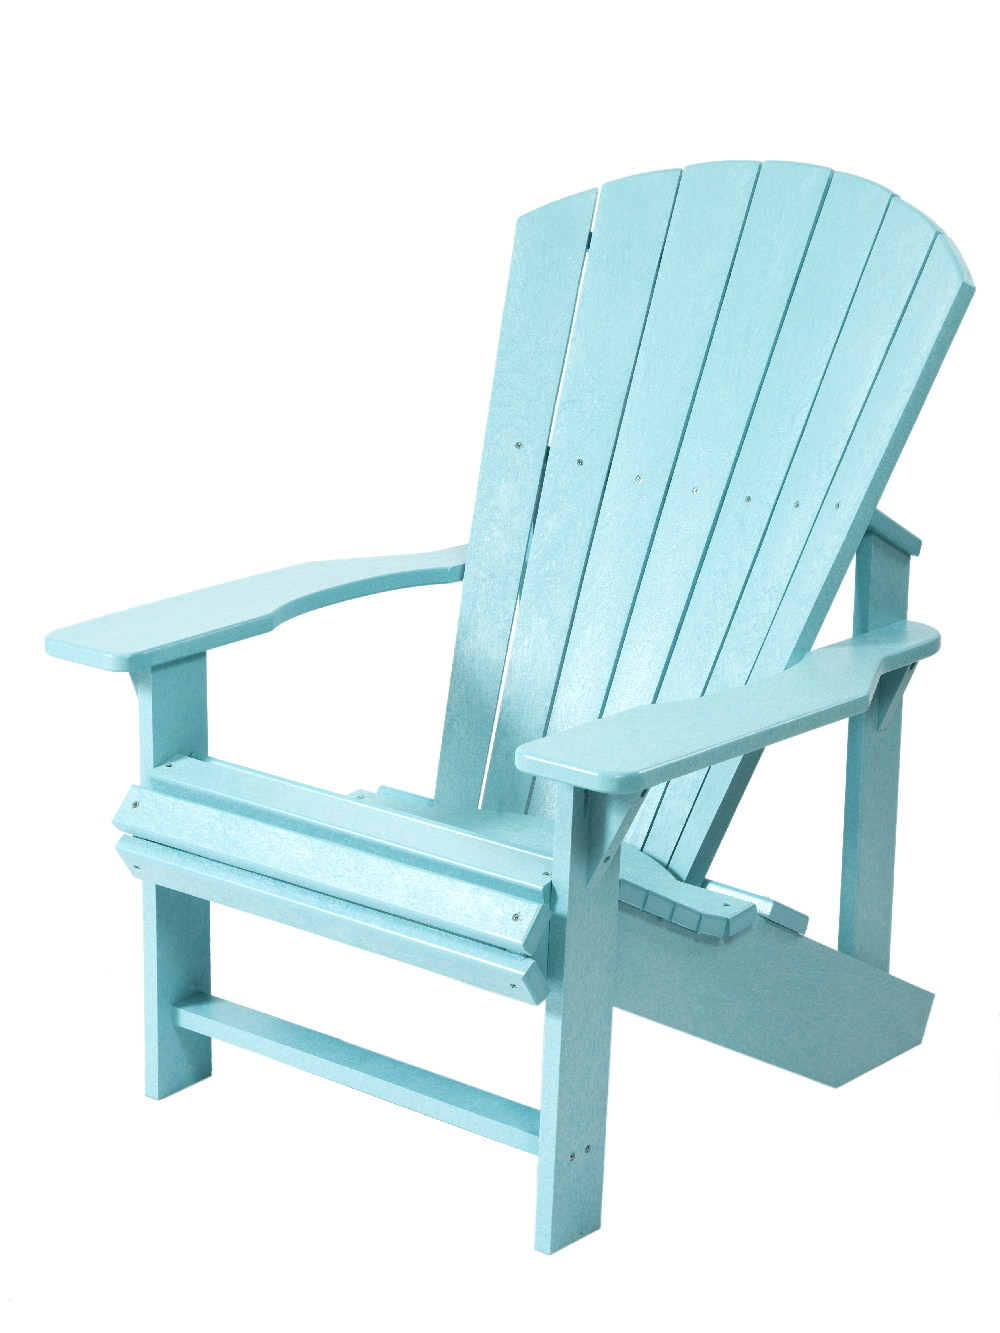 Delicieux Generations Kids Adirondack Chair Color: Aqua